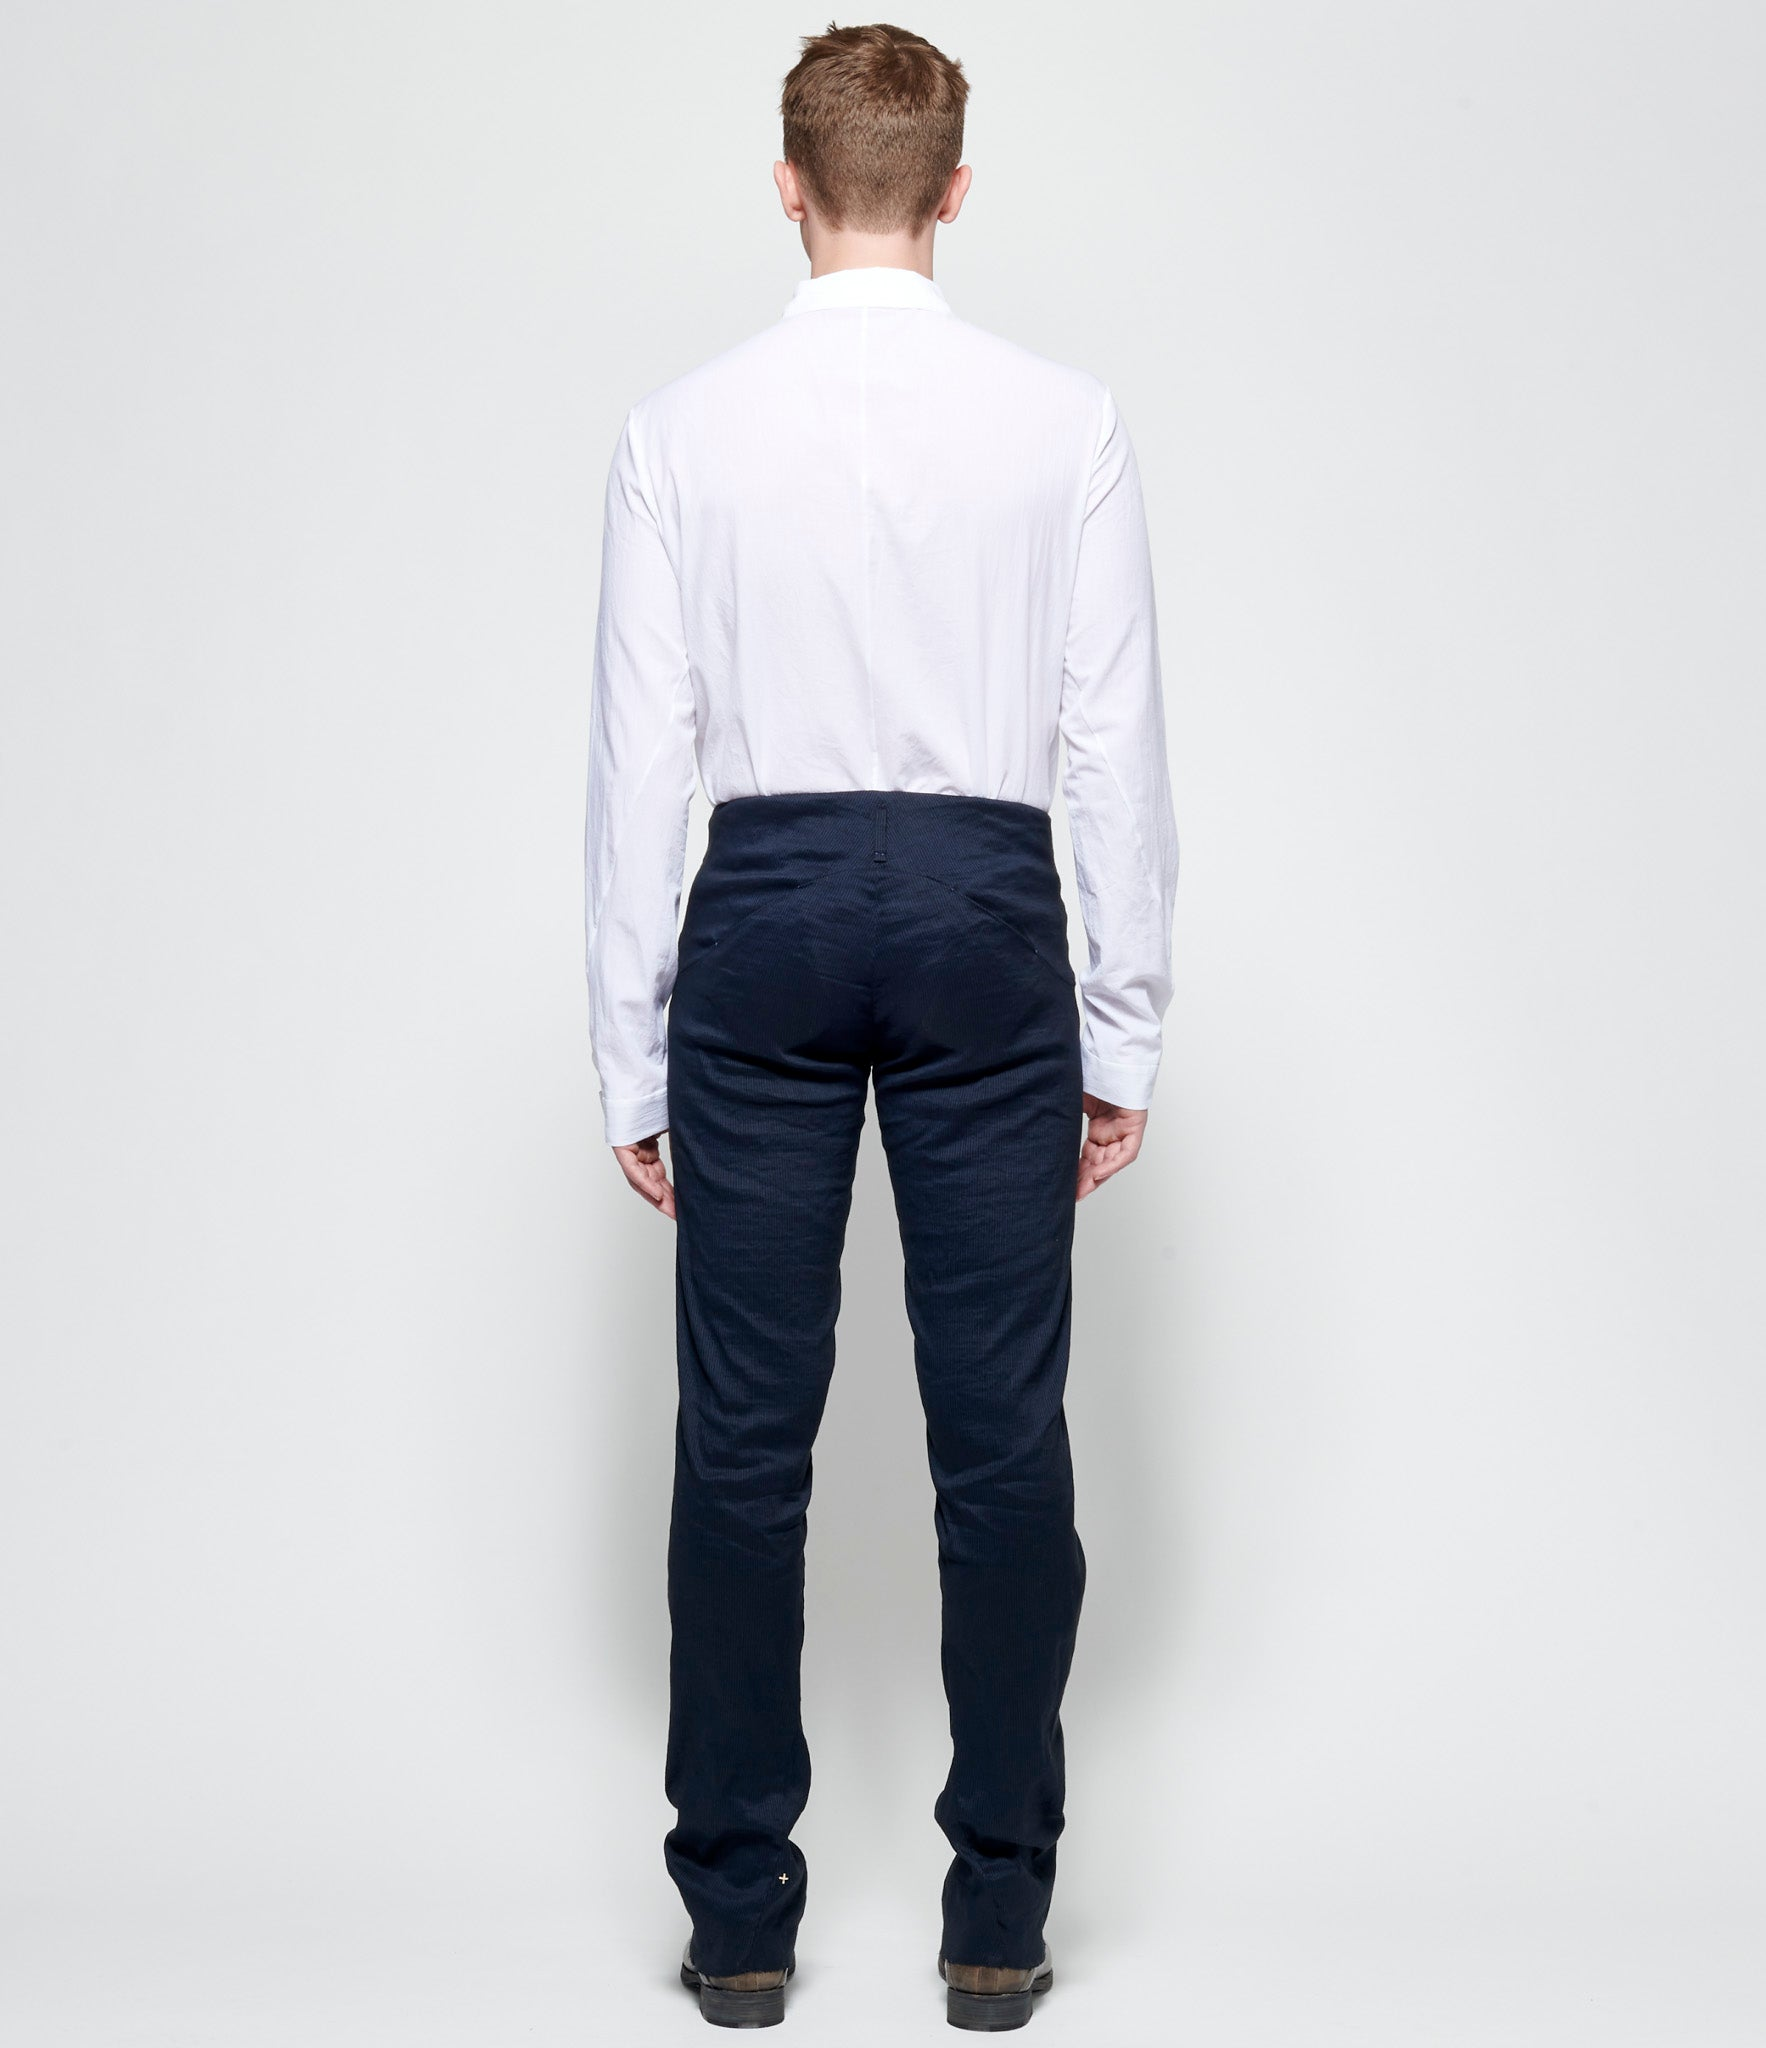 m.a+ 5 Pocket Medium Fit Pants